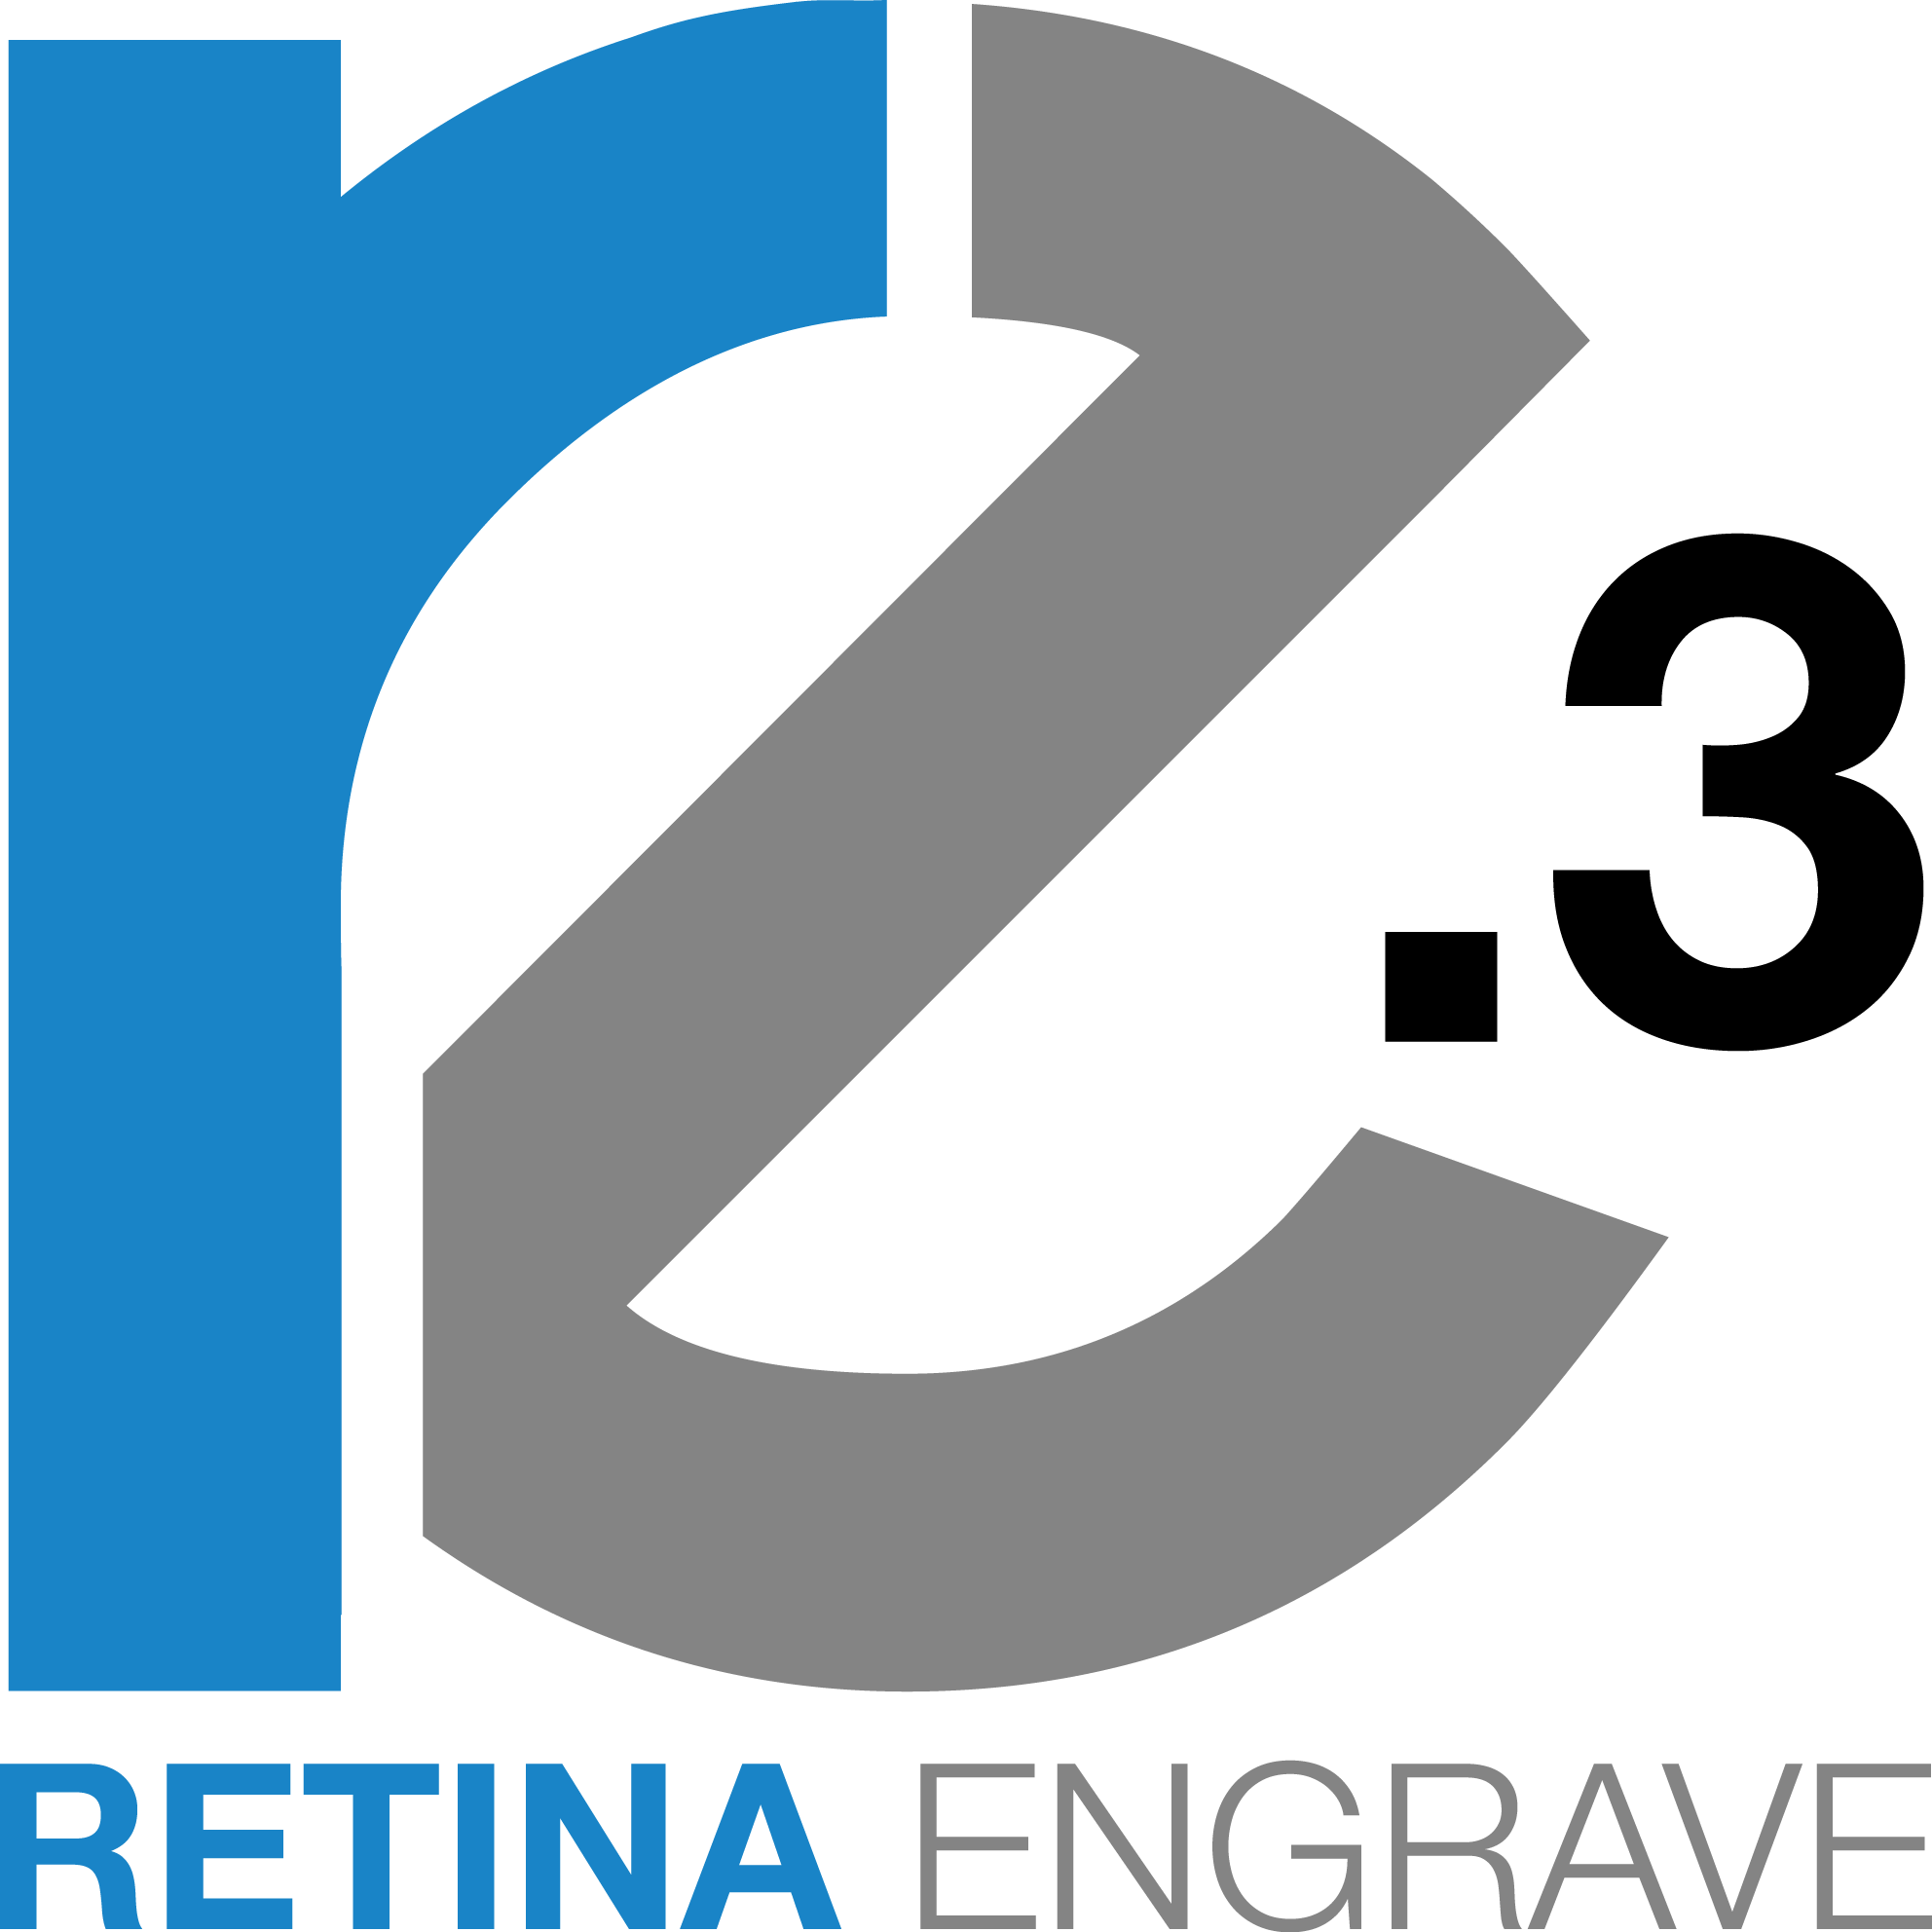 RetinaEngrave v3.0: World's Best Laser Control Software